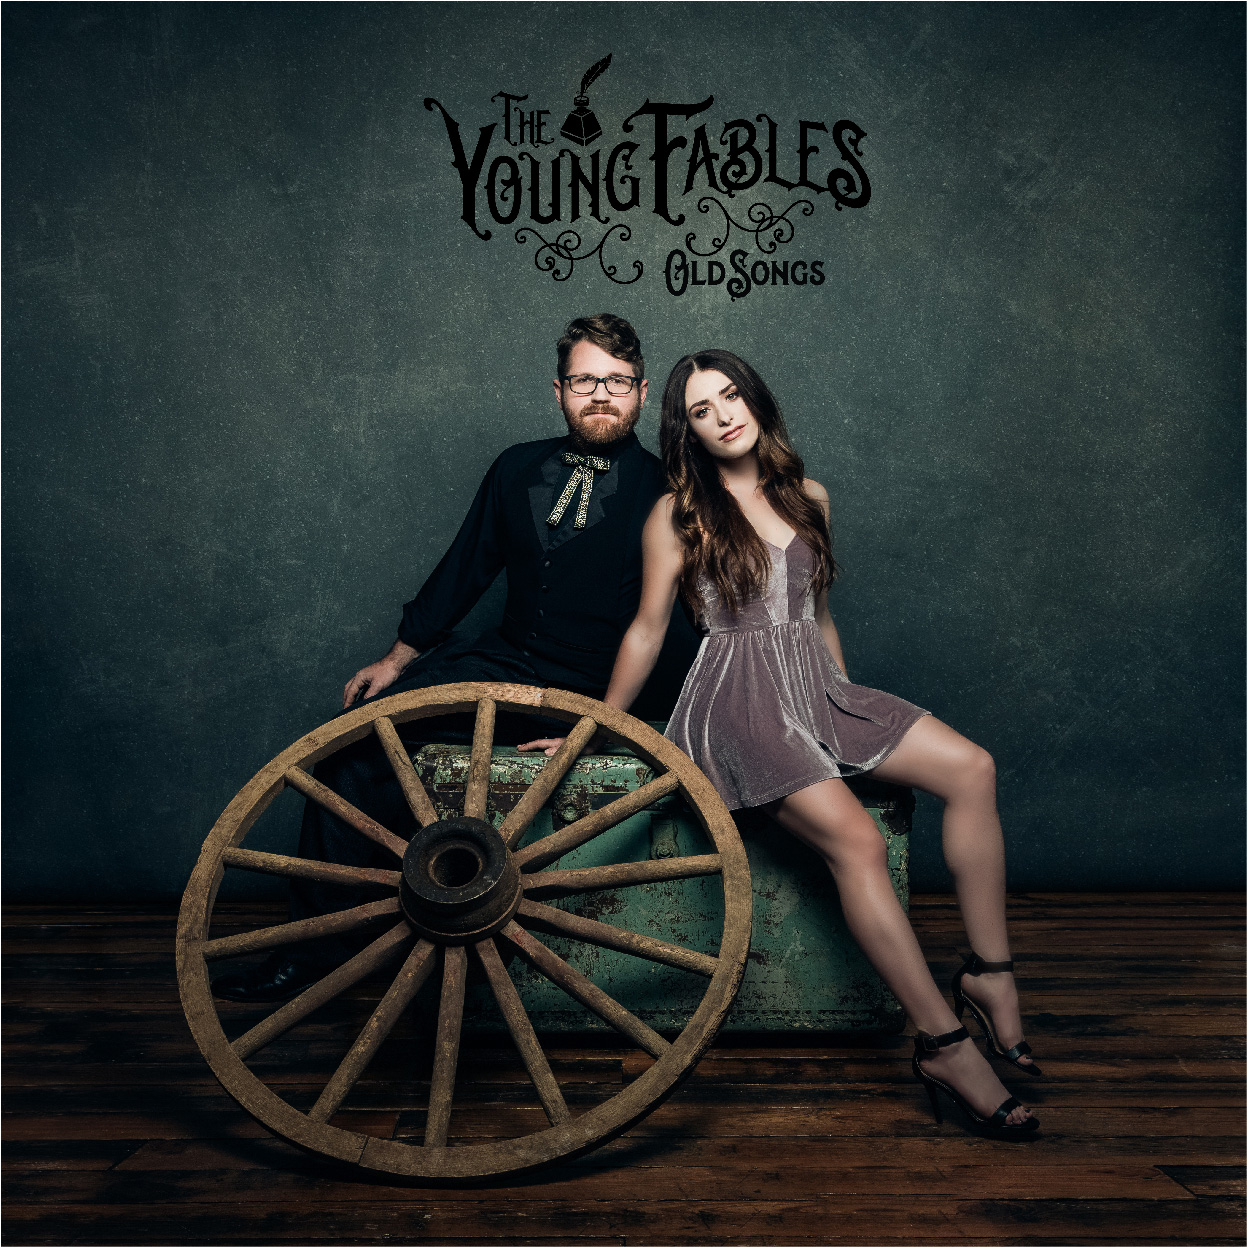 Old Songs Album - The Young Fables